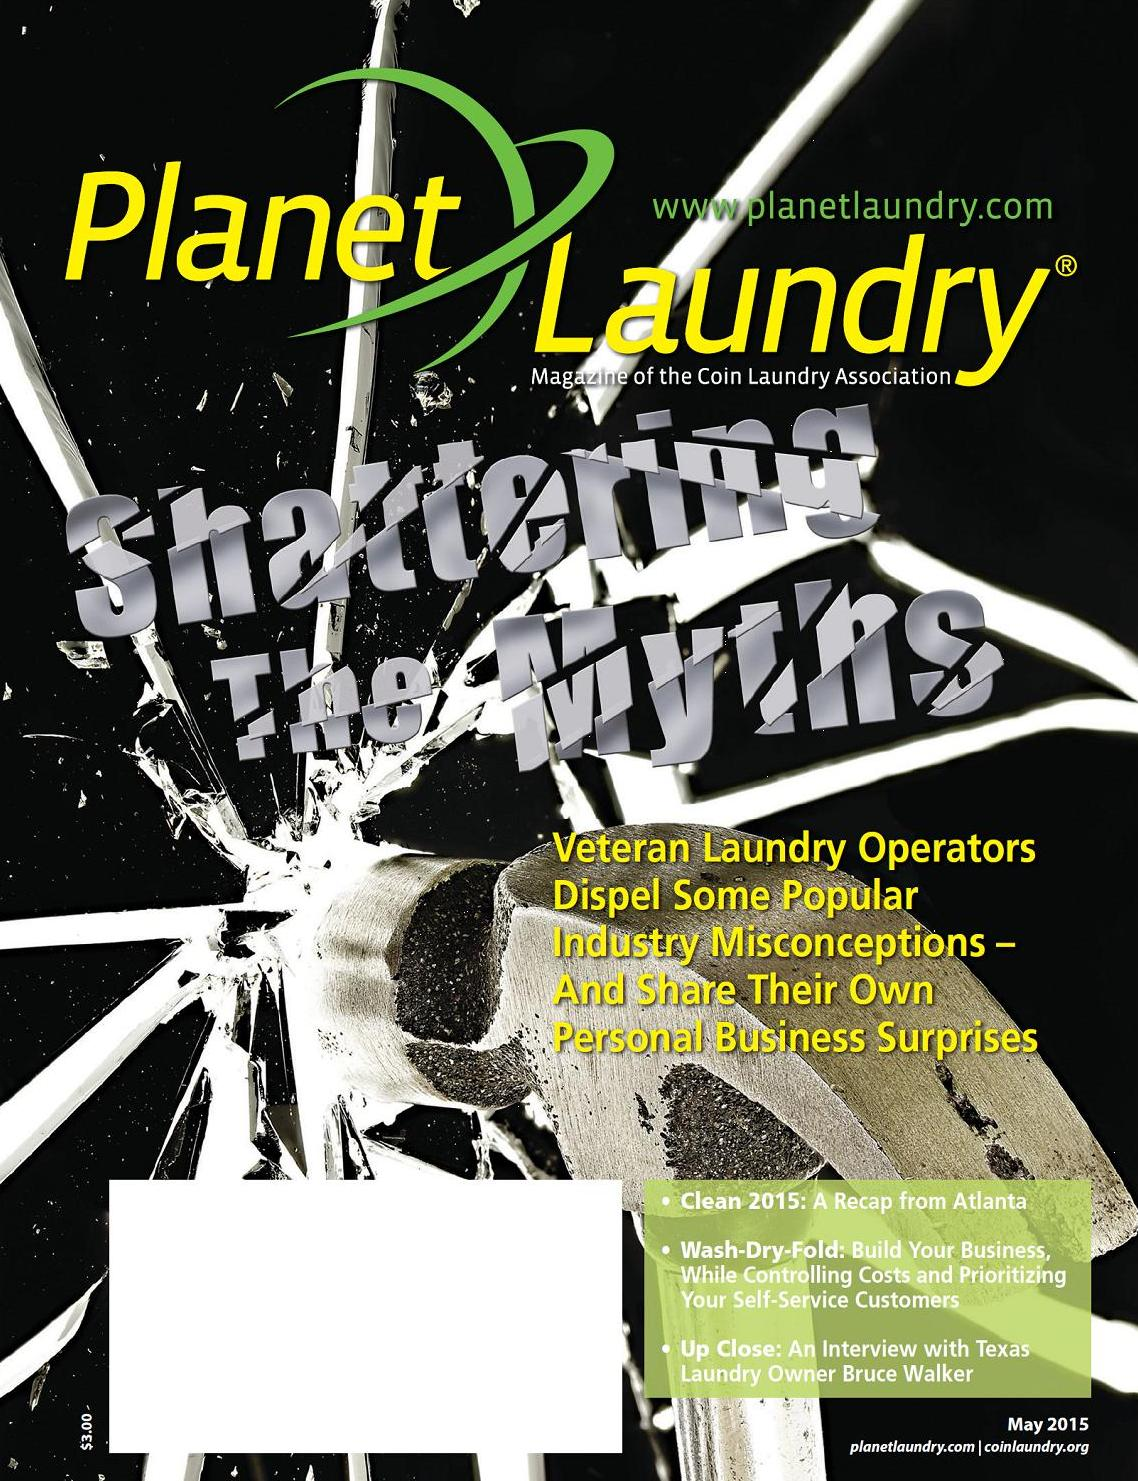 Planet Laundry article